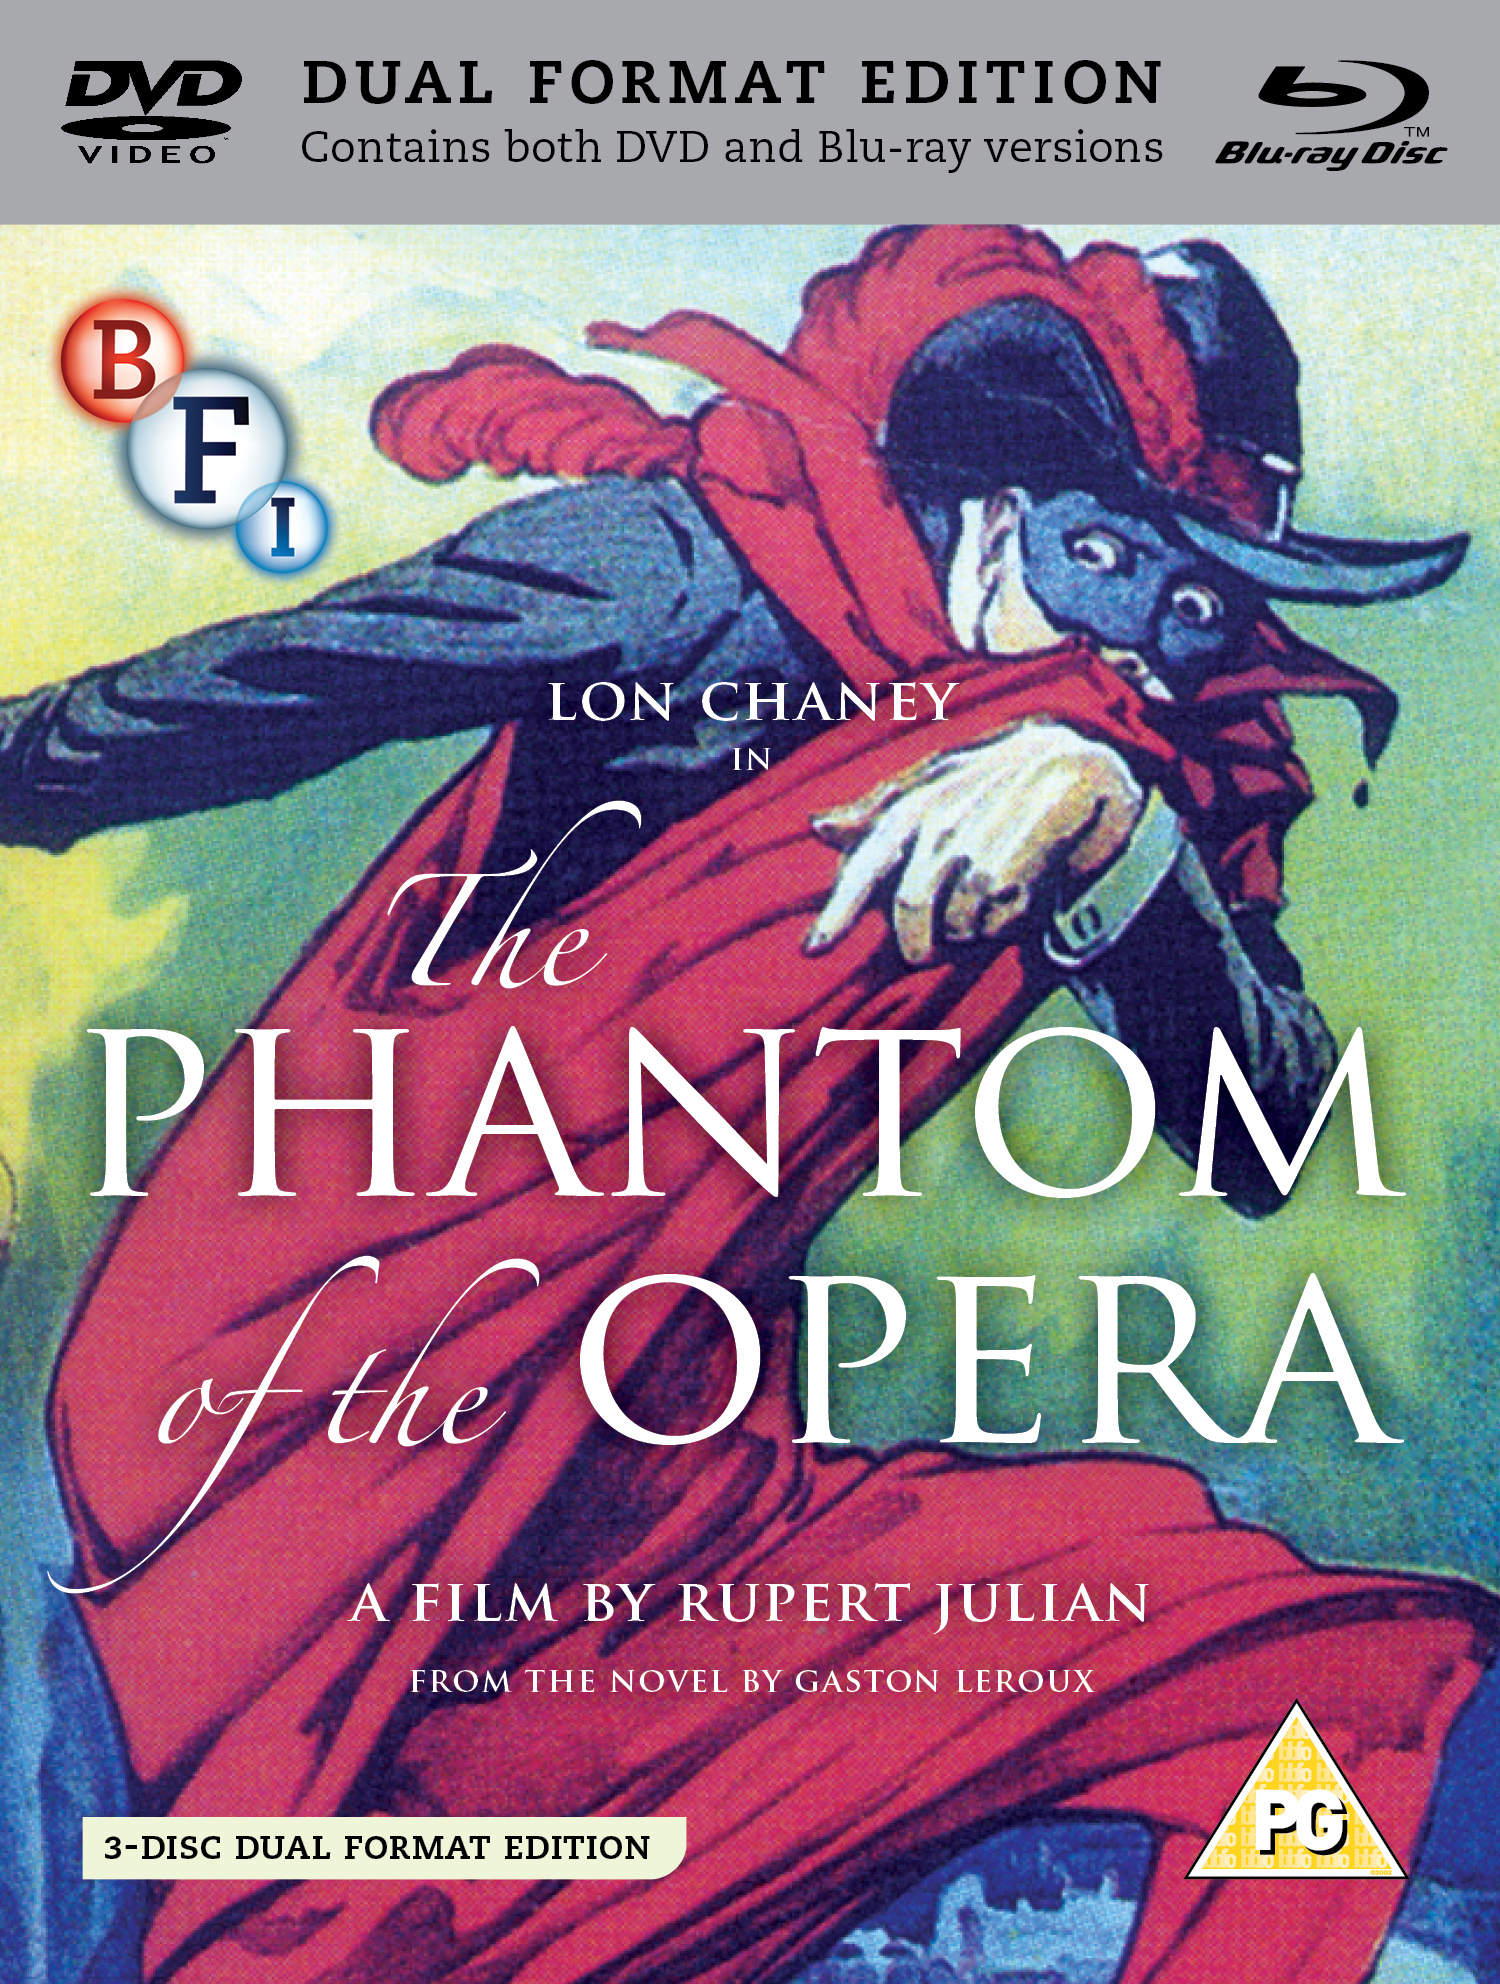 Buy Phantom of the Opera, The (3-disc Dual Format Edition)